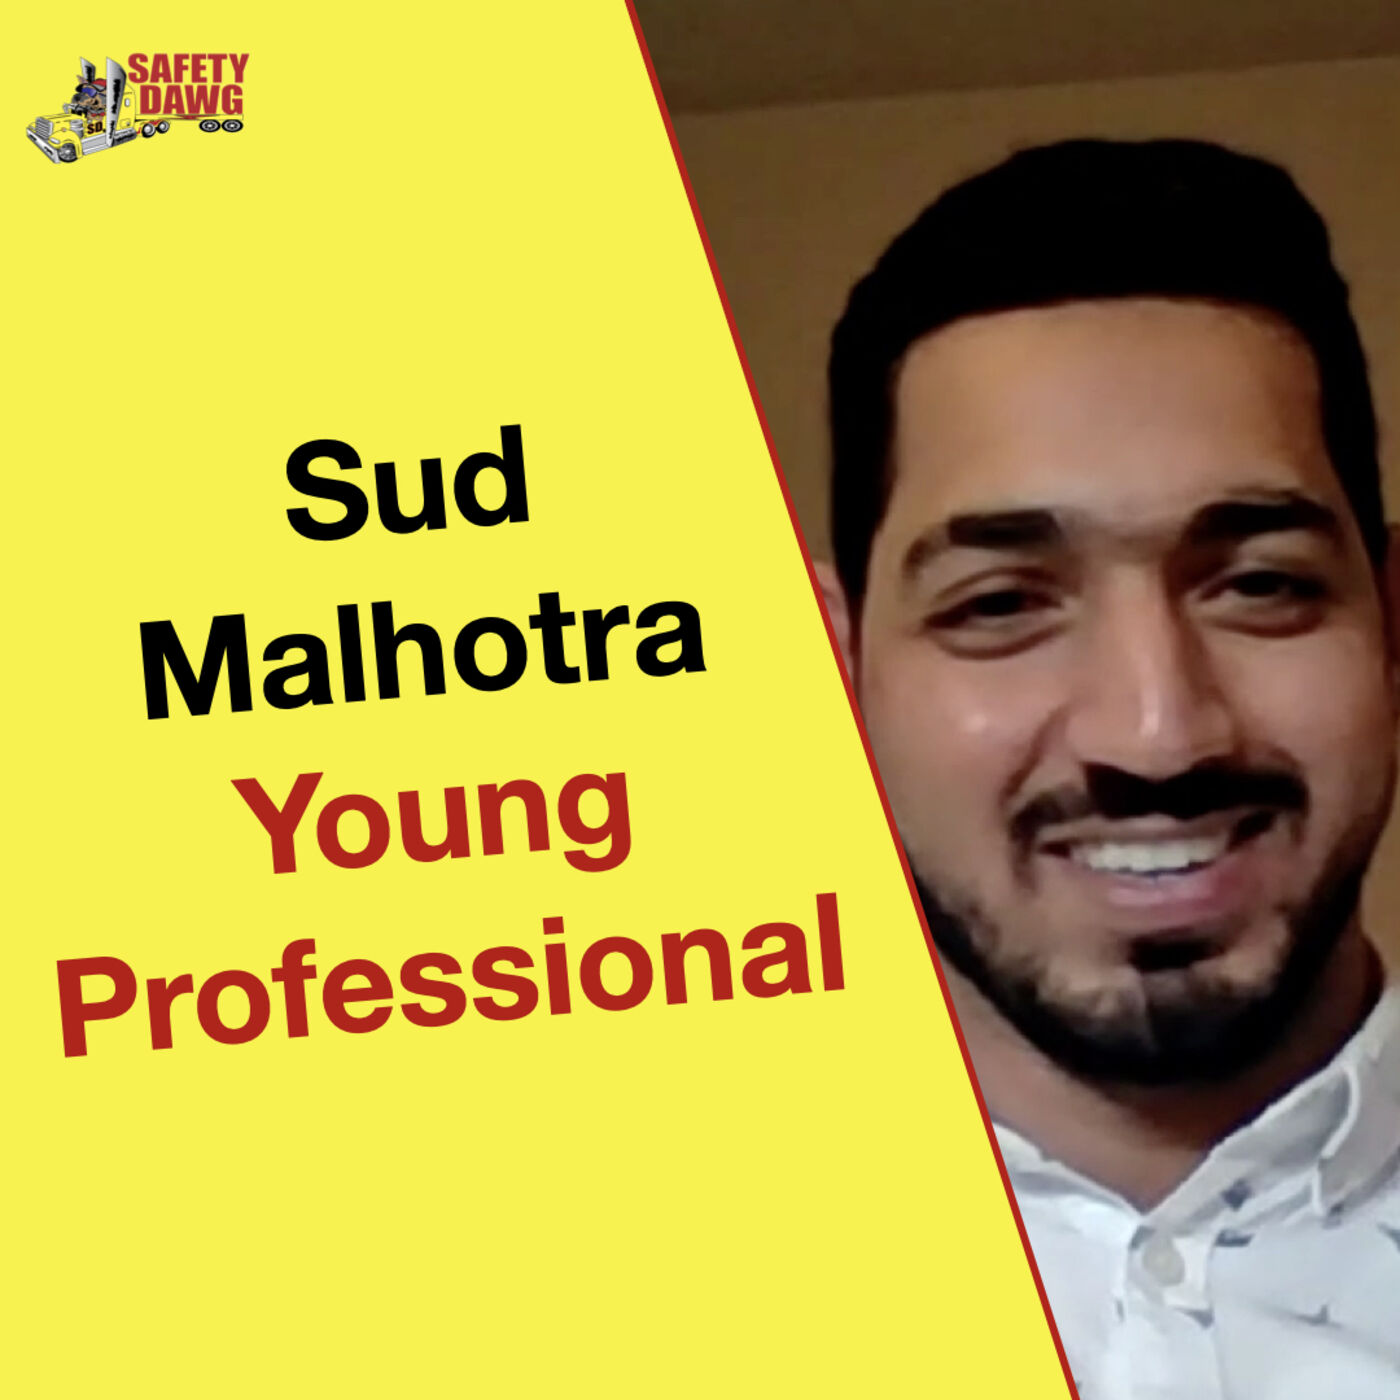 38. How To Be A Young Trucking Professional? Sud Malhotra